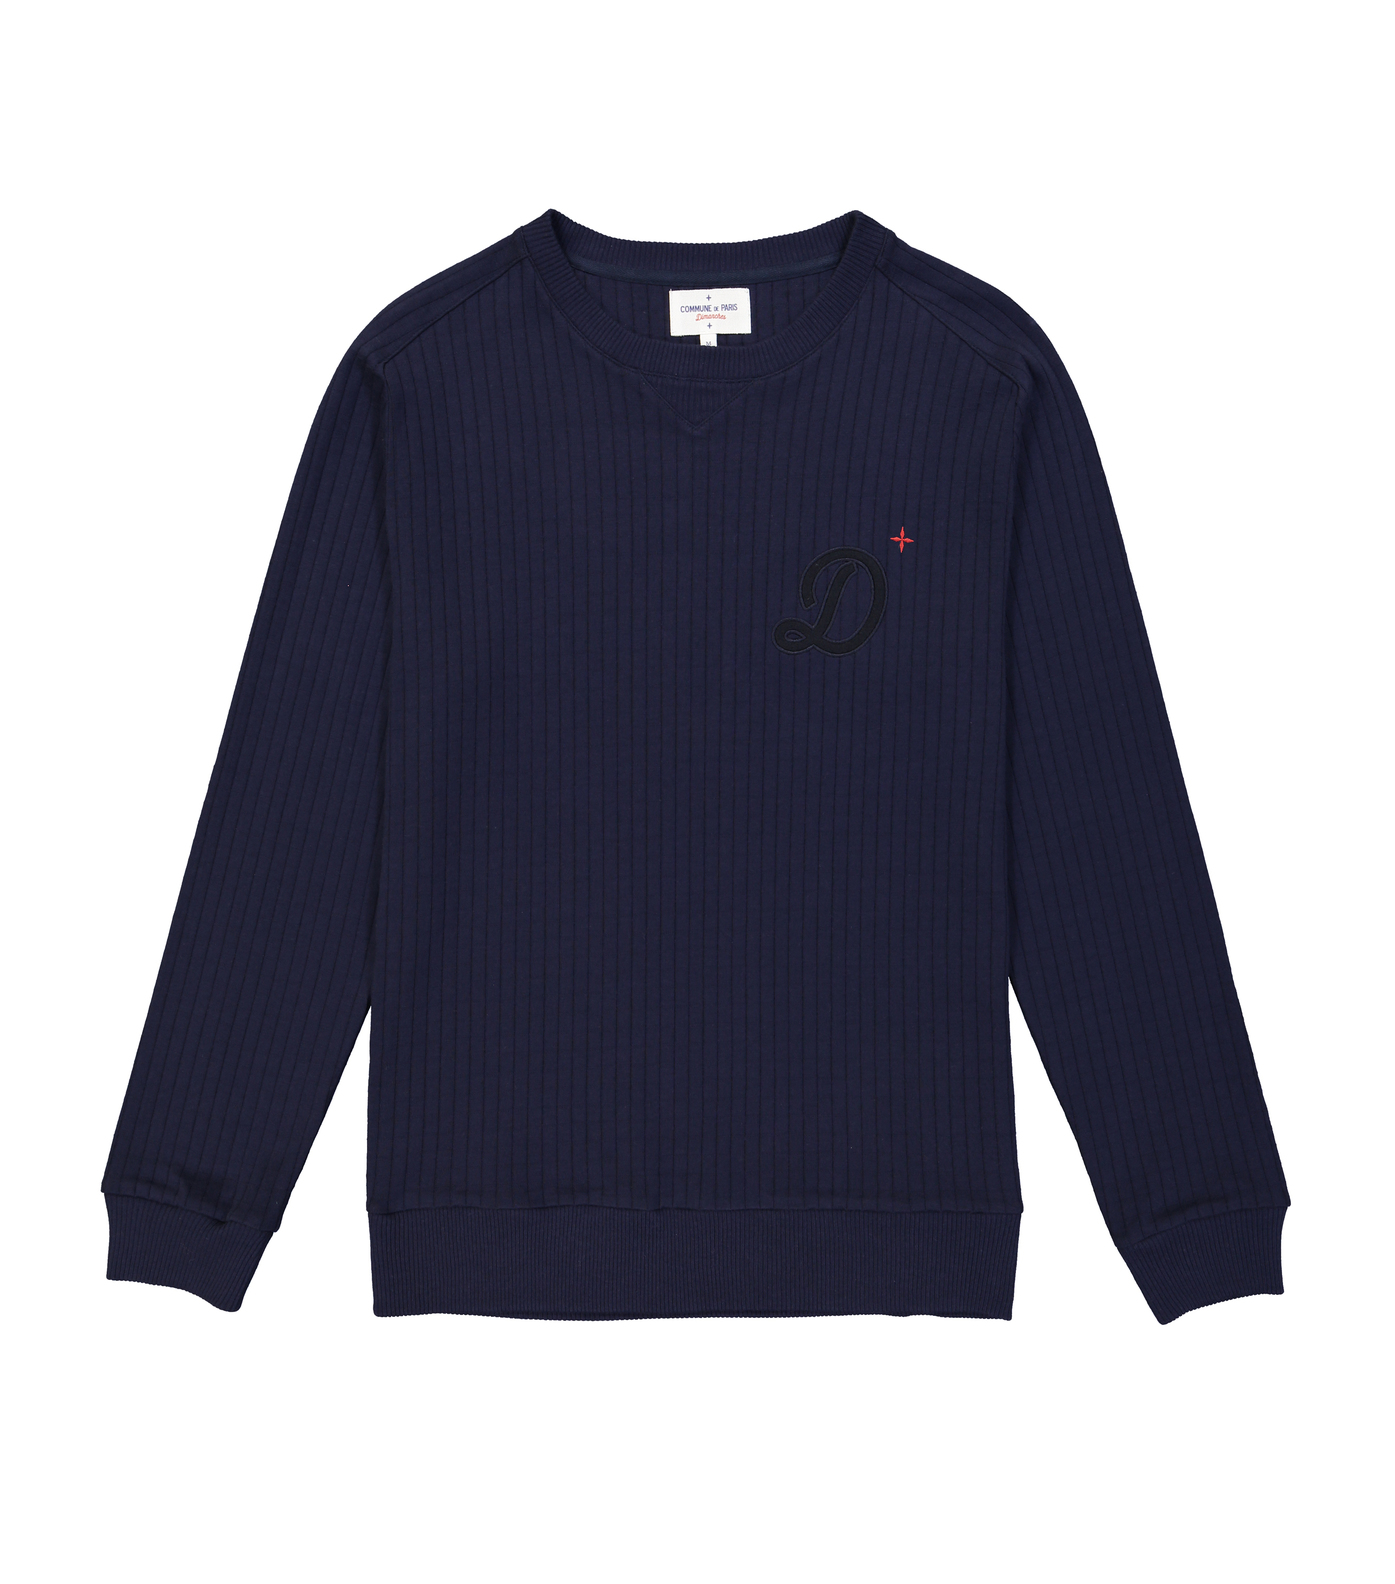 SWEAT BIG.D - Navy